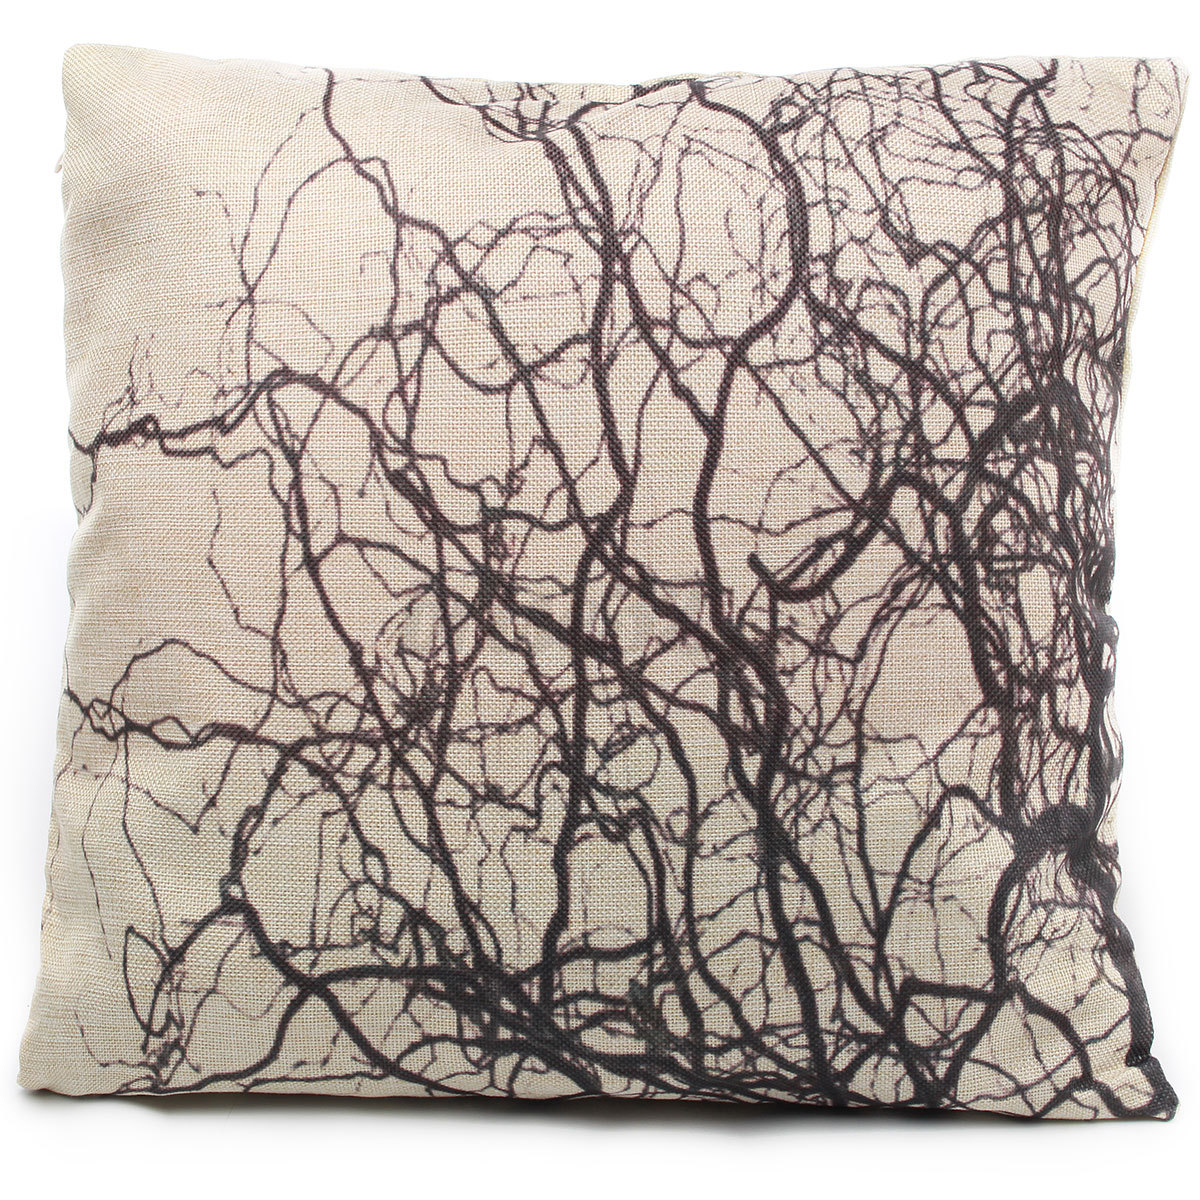 Cotton Linen Forest Throw Pillow Case Cover Bed Sofa Pack Cushion Home Decor eBay